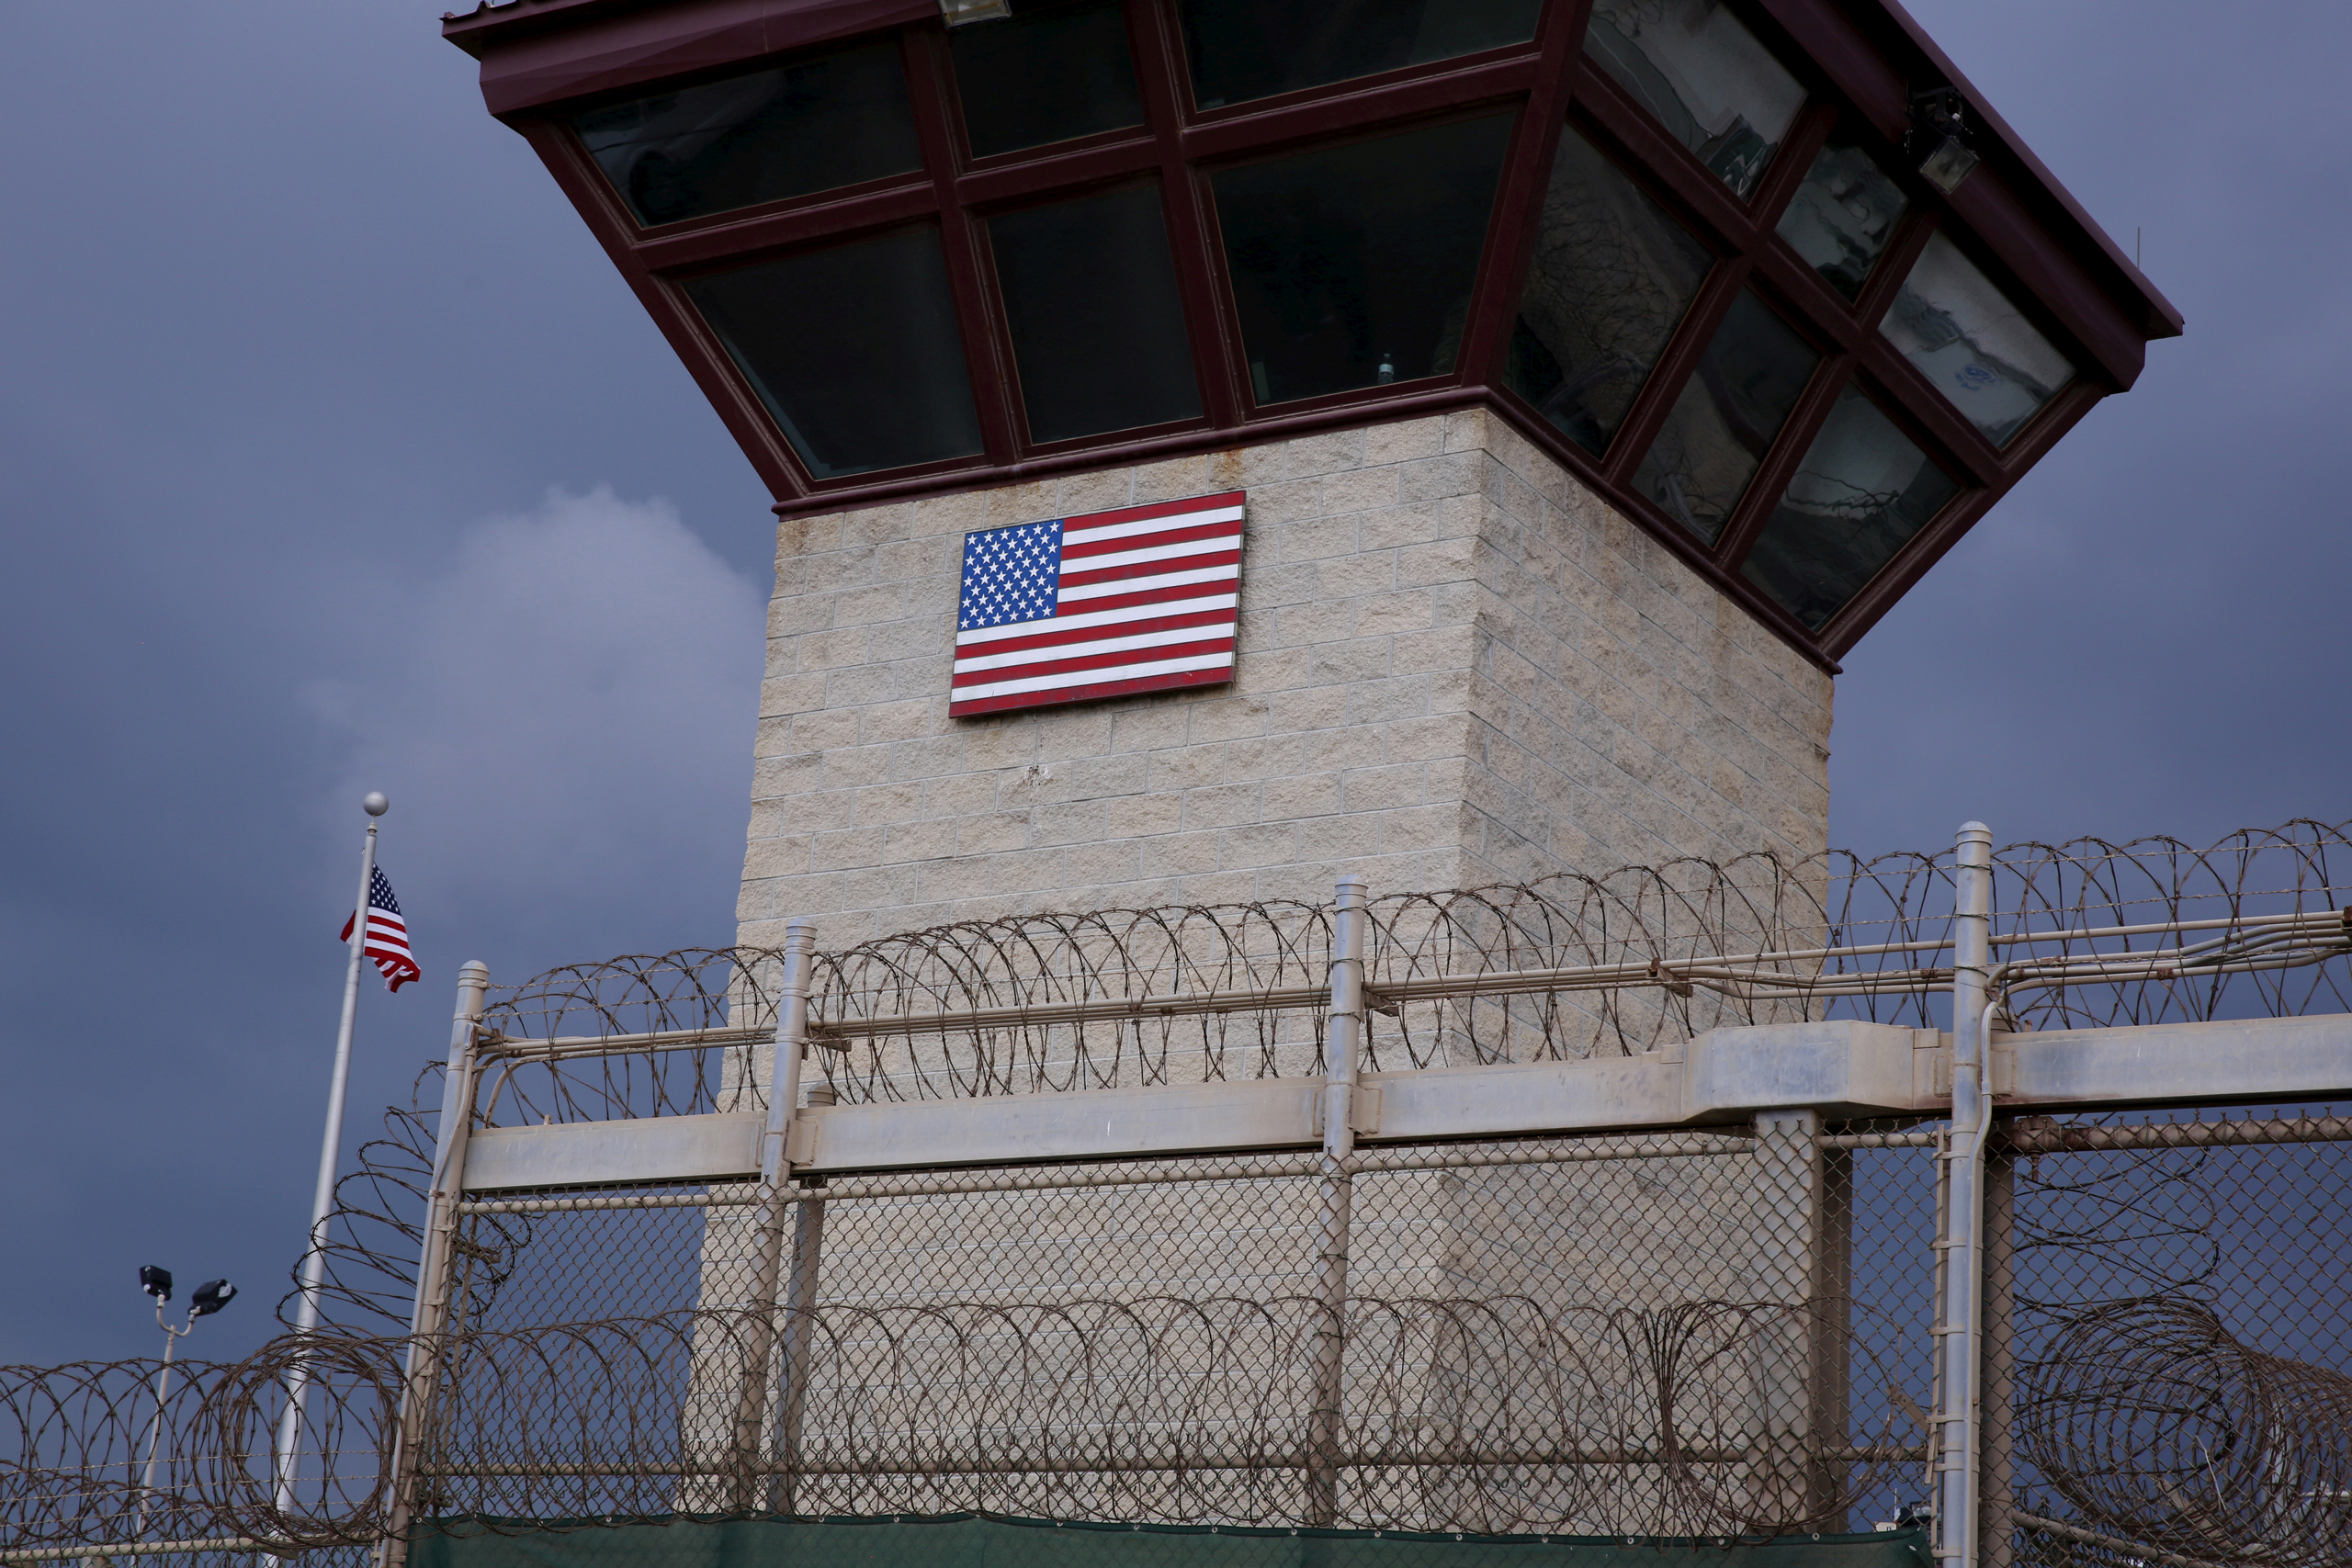 The United States flag decorates the side of a guard tower inside of Joint Task Force Guantanamo Camp VI at the U.S. Naval Base in Guantanamo Bay, Cuba, on March 22, 2016.